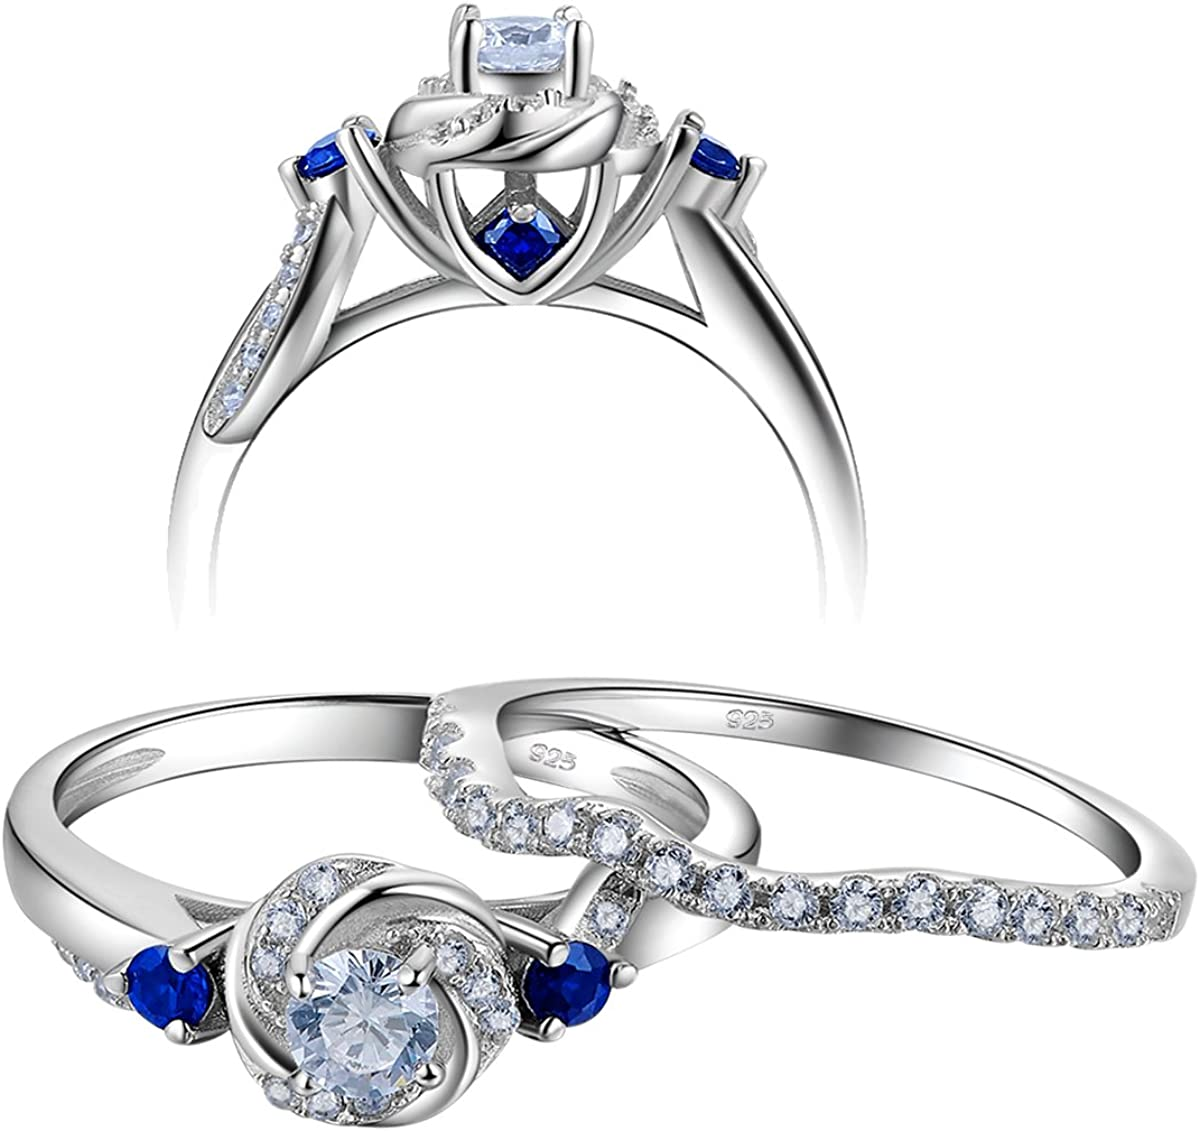 Newshe Size 8 9 Engagement Wedding Ring Set for Women 925 Sterling Silver 0.8ct Round White Cz Blue